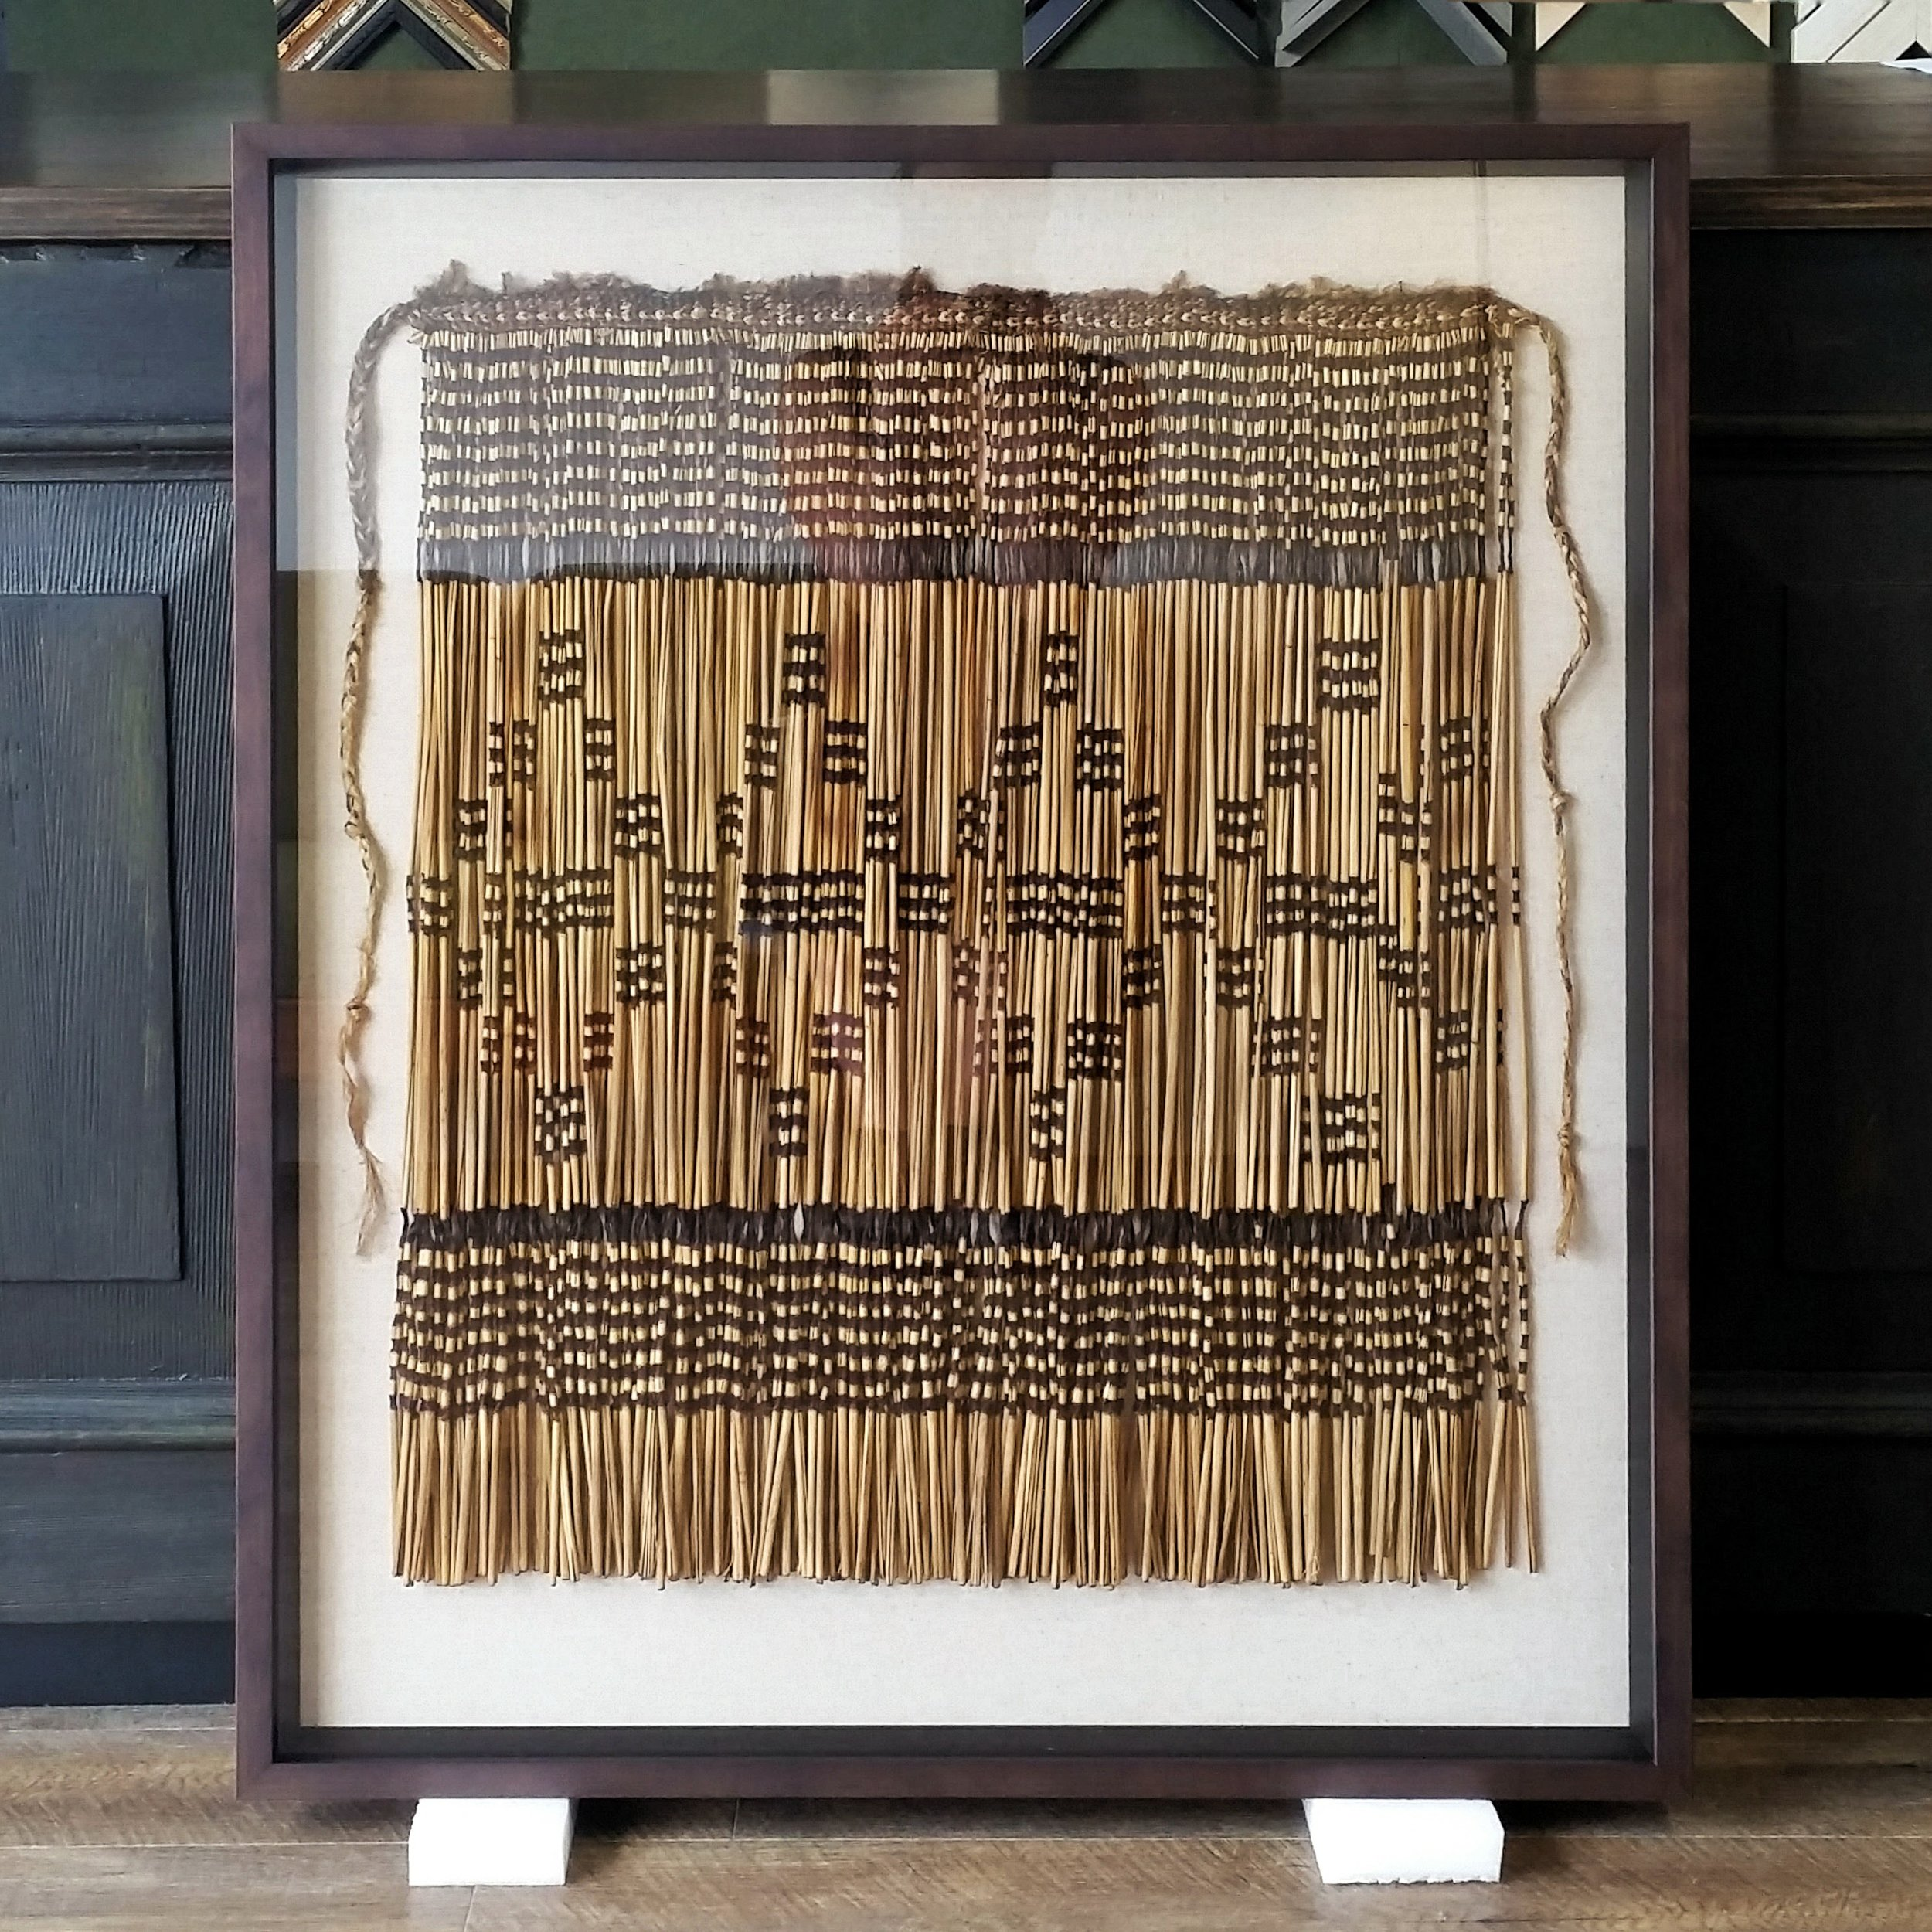 Nearly-100-year-old piupiu hand-stitched onto linen-covered backing, and box framed